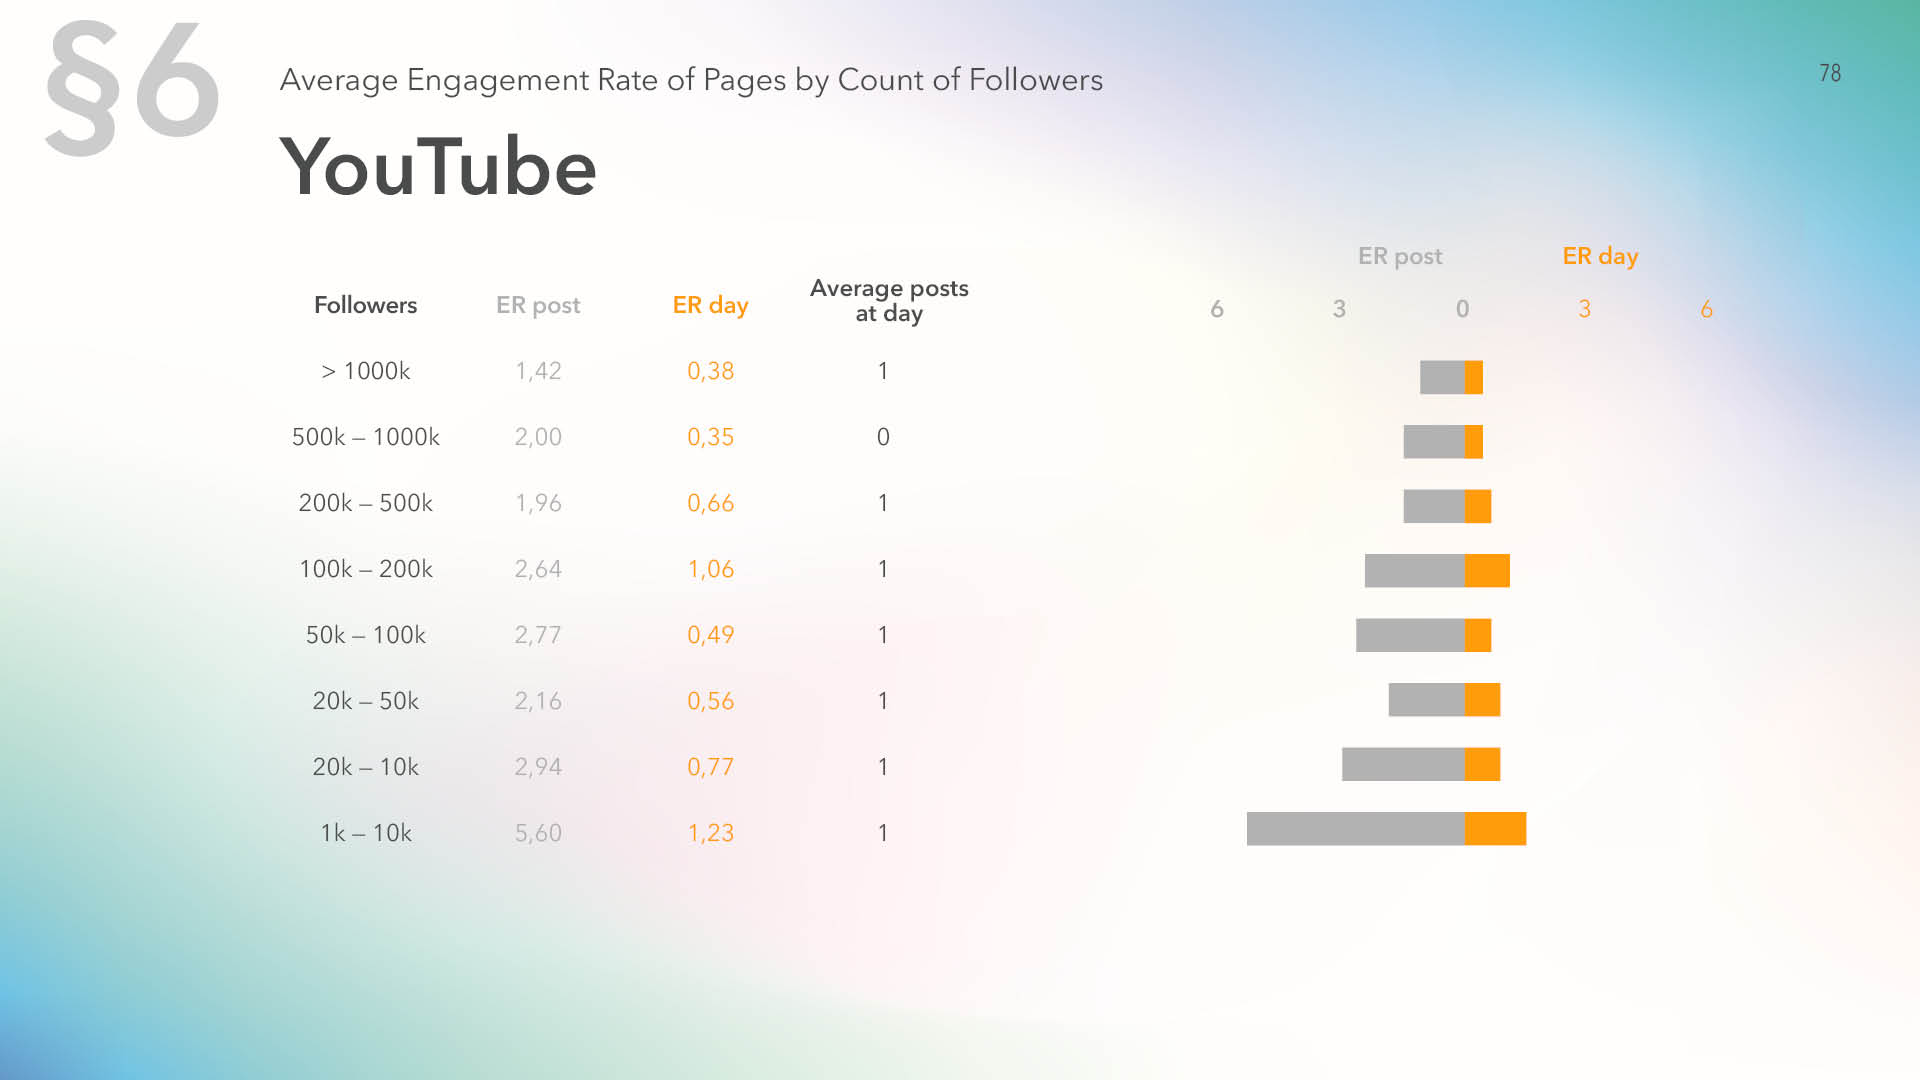 Average engagement rate of YouTube pages by count of followers for 2019